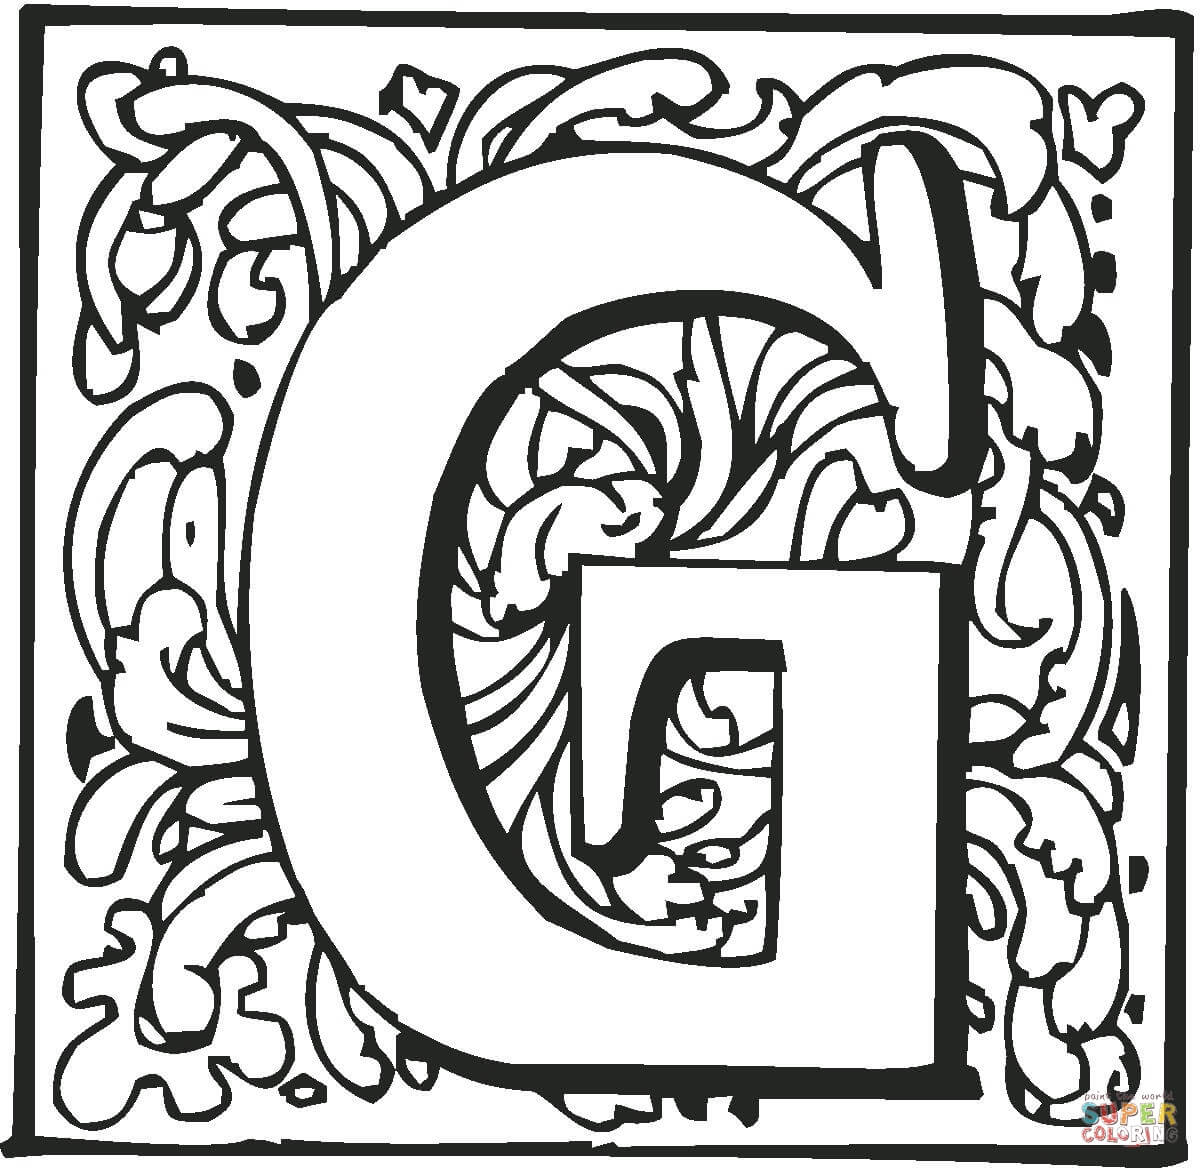 1200x1168 Letter G Coloring Pages Free Coloring Pages Letter G Coloring Page